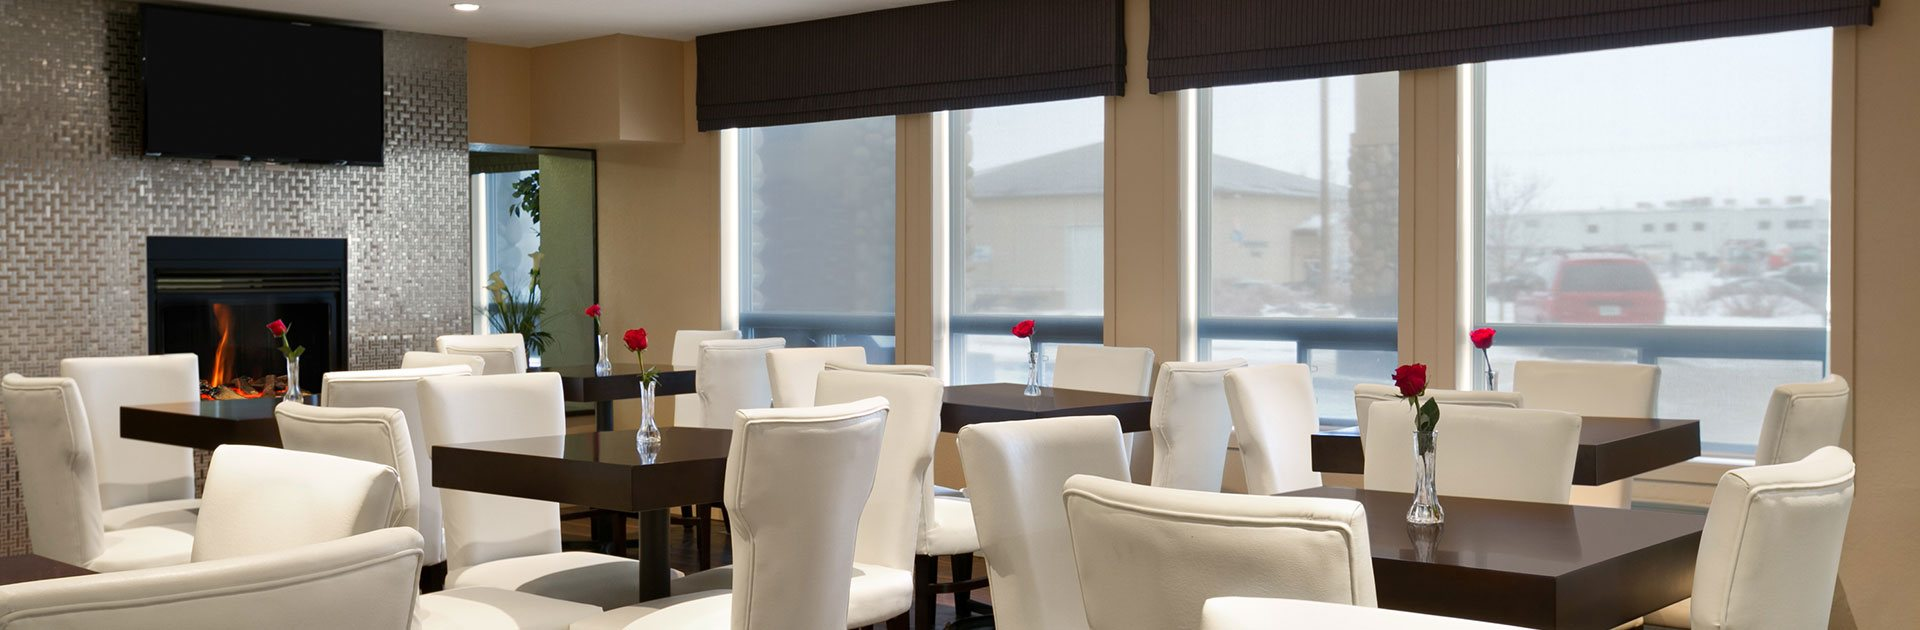 Four large windows let natural light into the dining space of d3h Days Inn Regina populated with square penny brown wood tables, topped with a single red rose in a glass bud vase, amidst a sea of white upholstered dining chairs.  The eating space is dominated by the glass enclosed fireplace with a shiny silver metallic surround and a flatscreen TV mounted above.